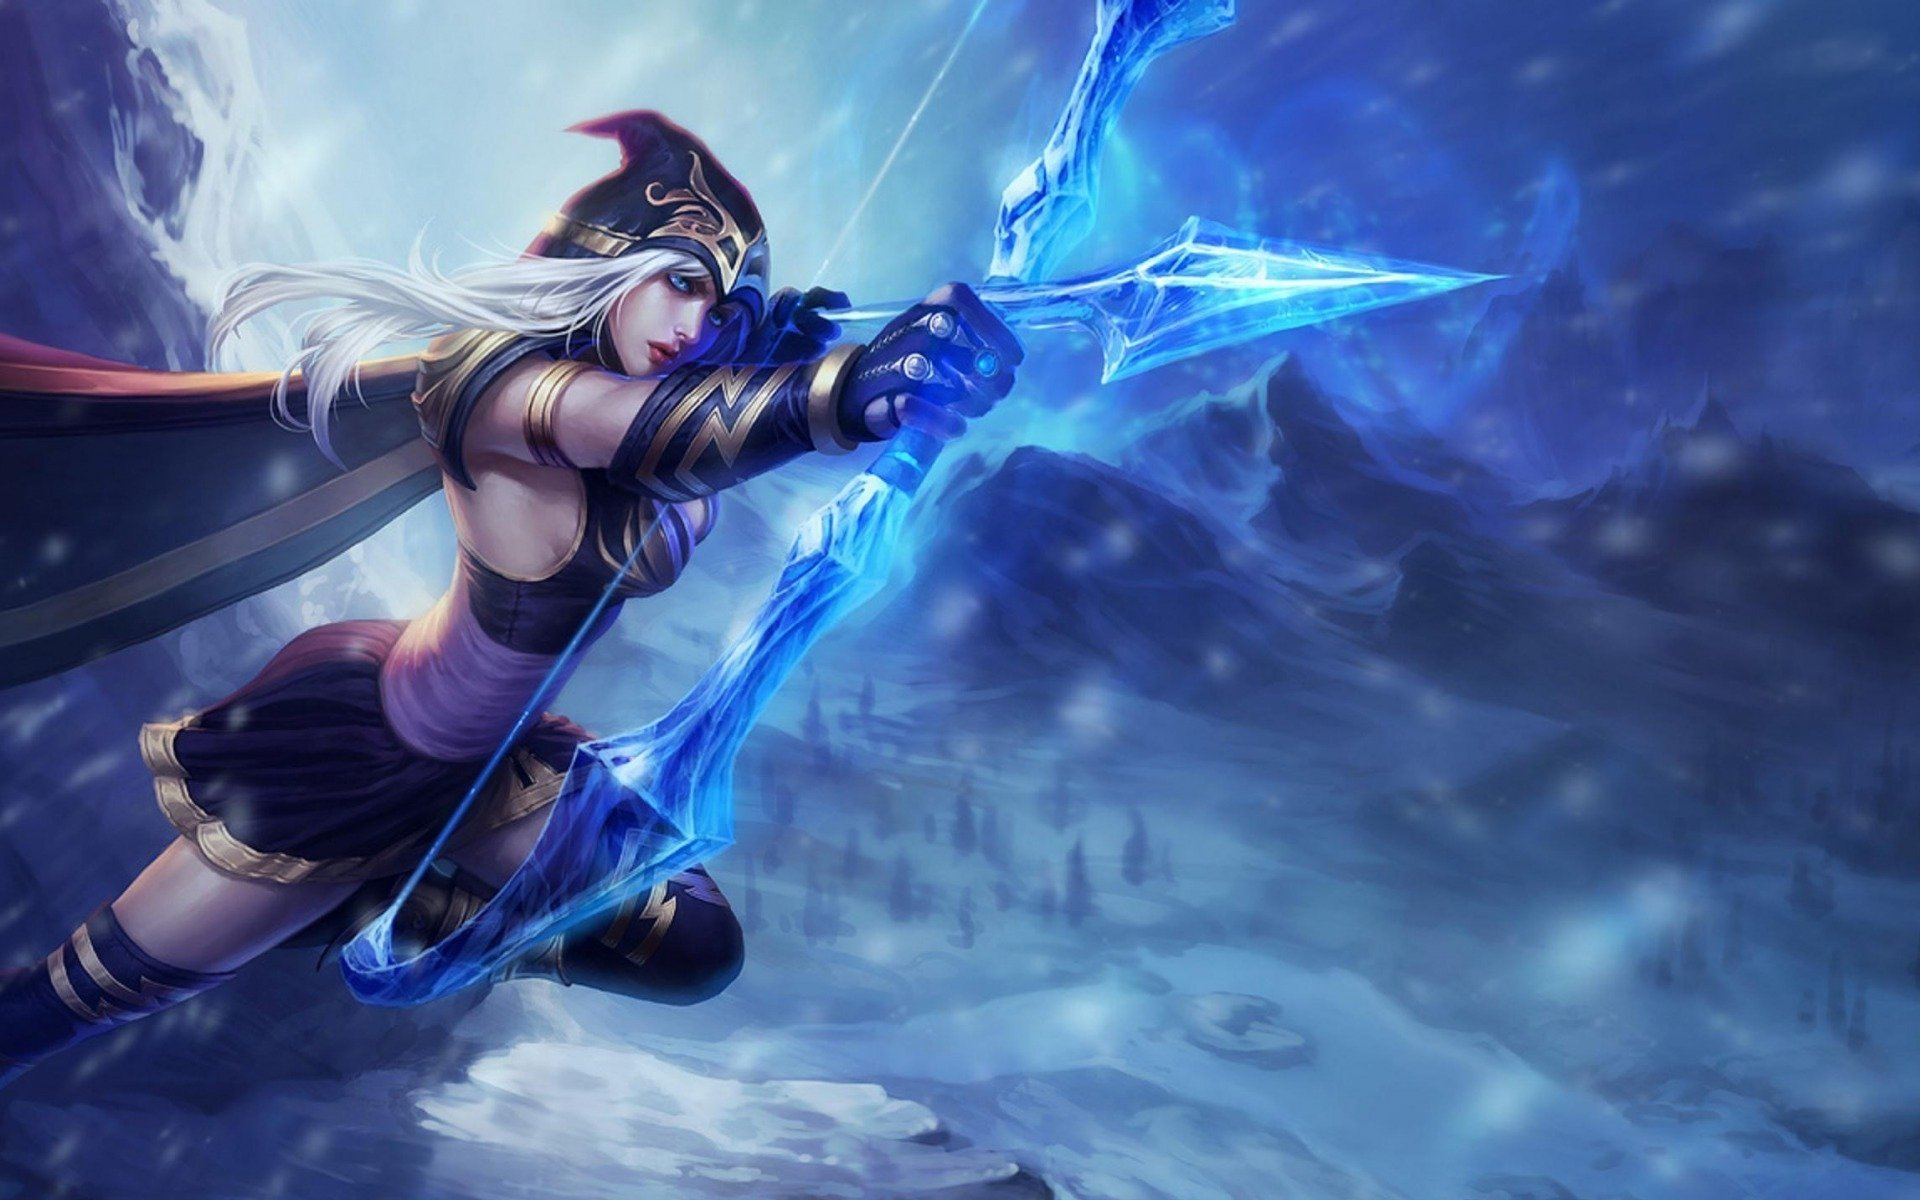 Video Game - League Of Legends  Ashe (League Of Legends) Fantasy Woman Warrior White Hair Archer Bow Arrow Wallpaper